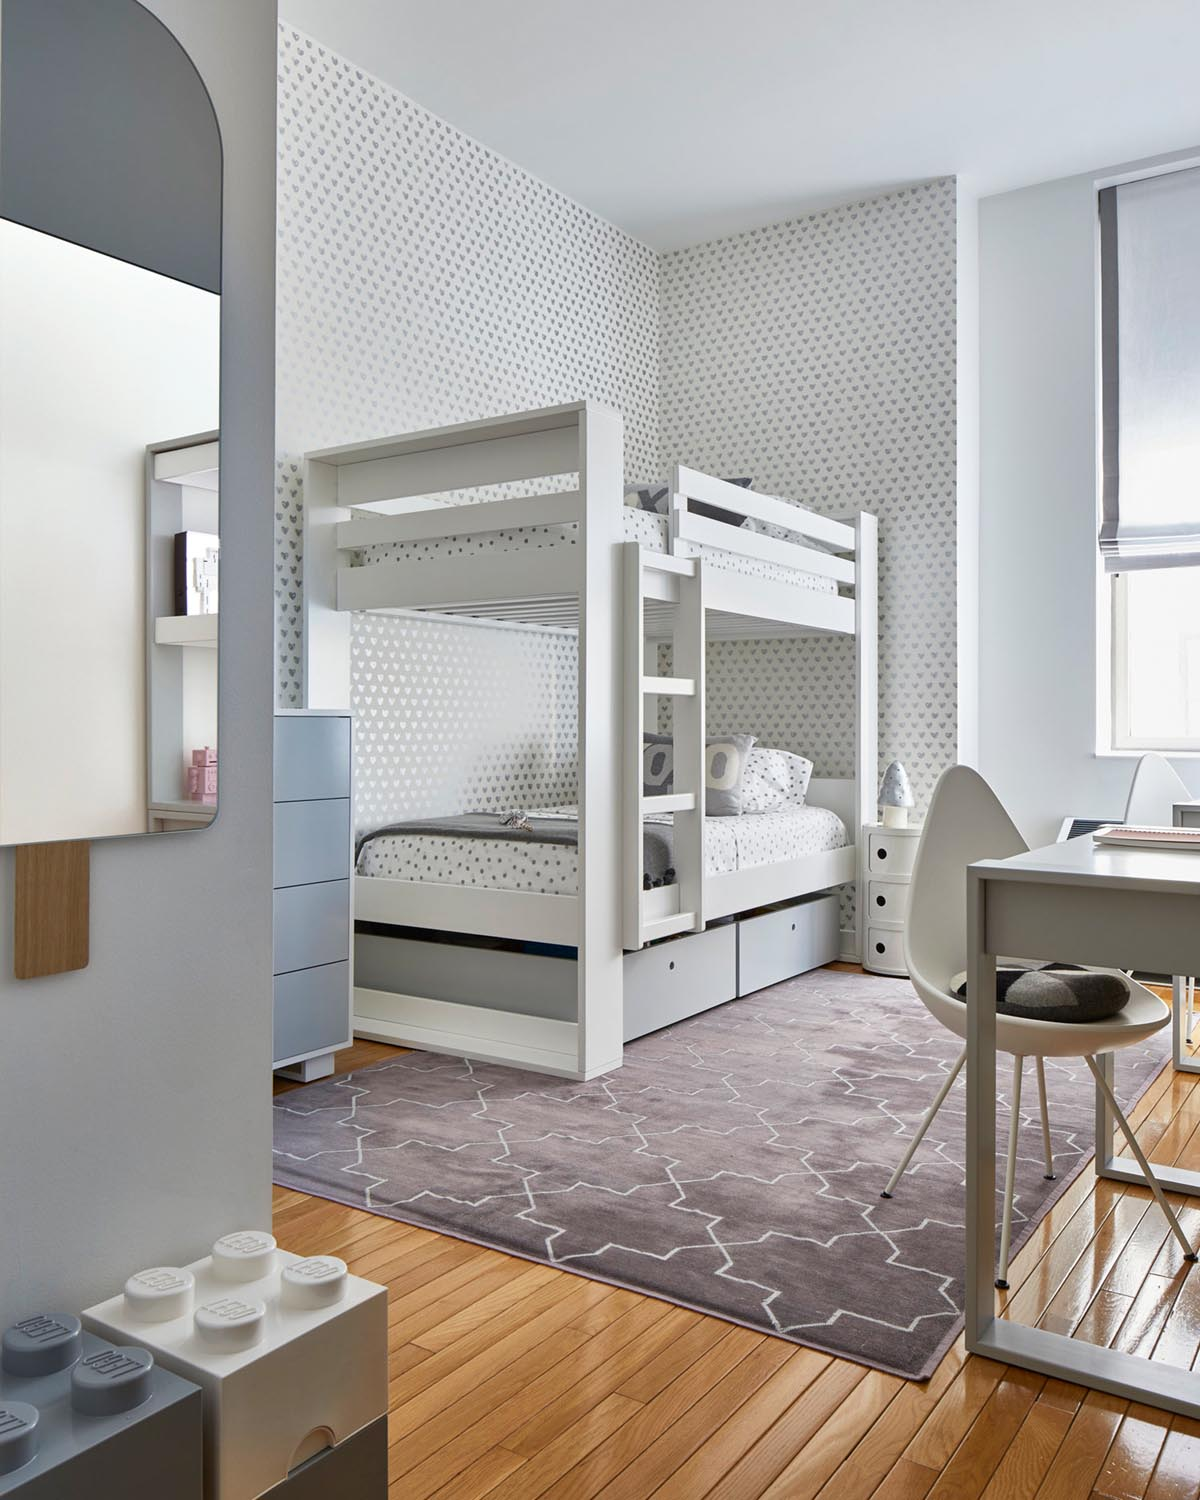 Inspiration Shared Kids Rooms With Bunk Beds Winter Daisy Melissa Barling Kids Interior Decorator Lifestyle Blogger